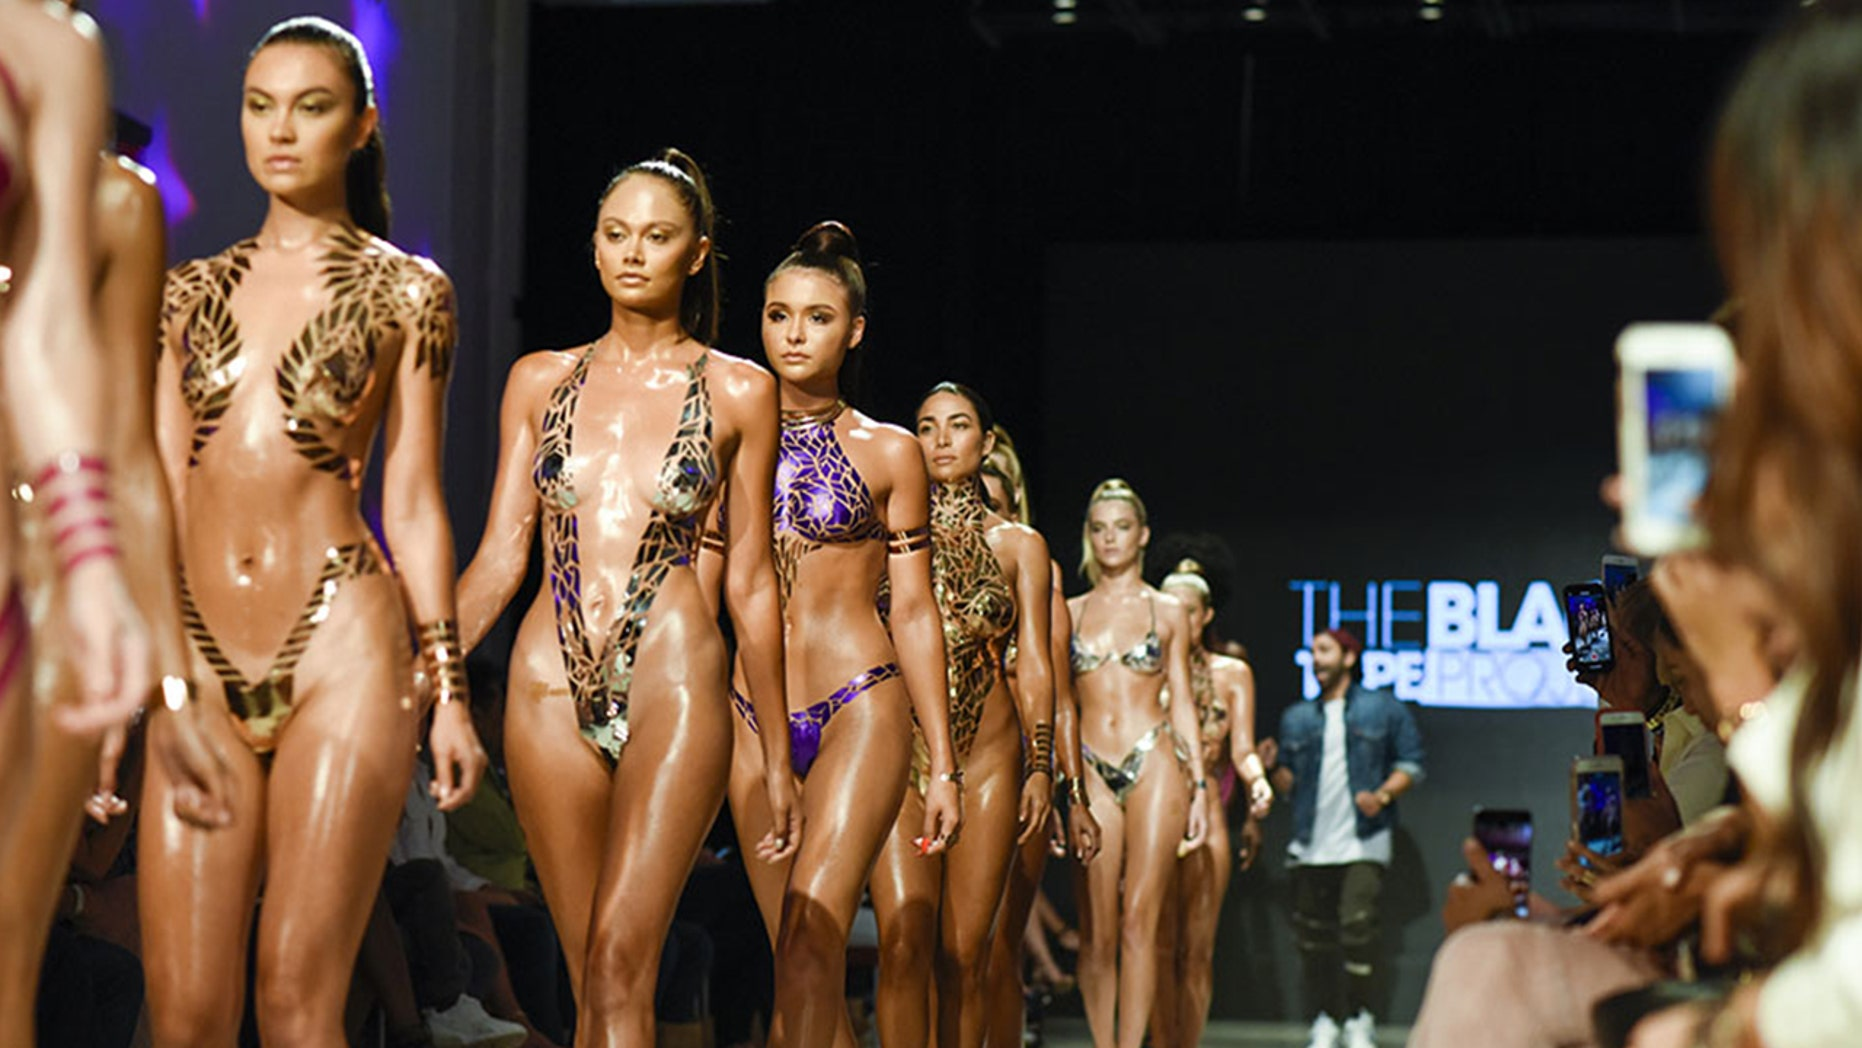 Models walked the runway at Miami Swim Week wearing stick-on swimwear.